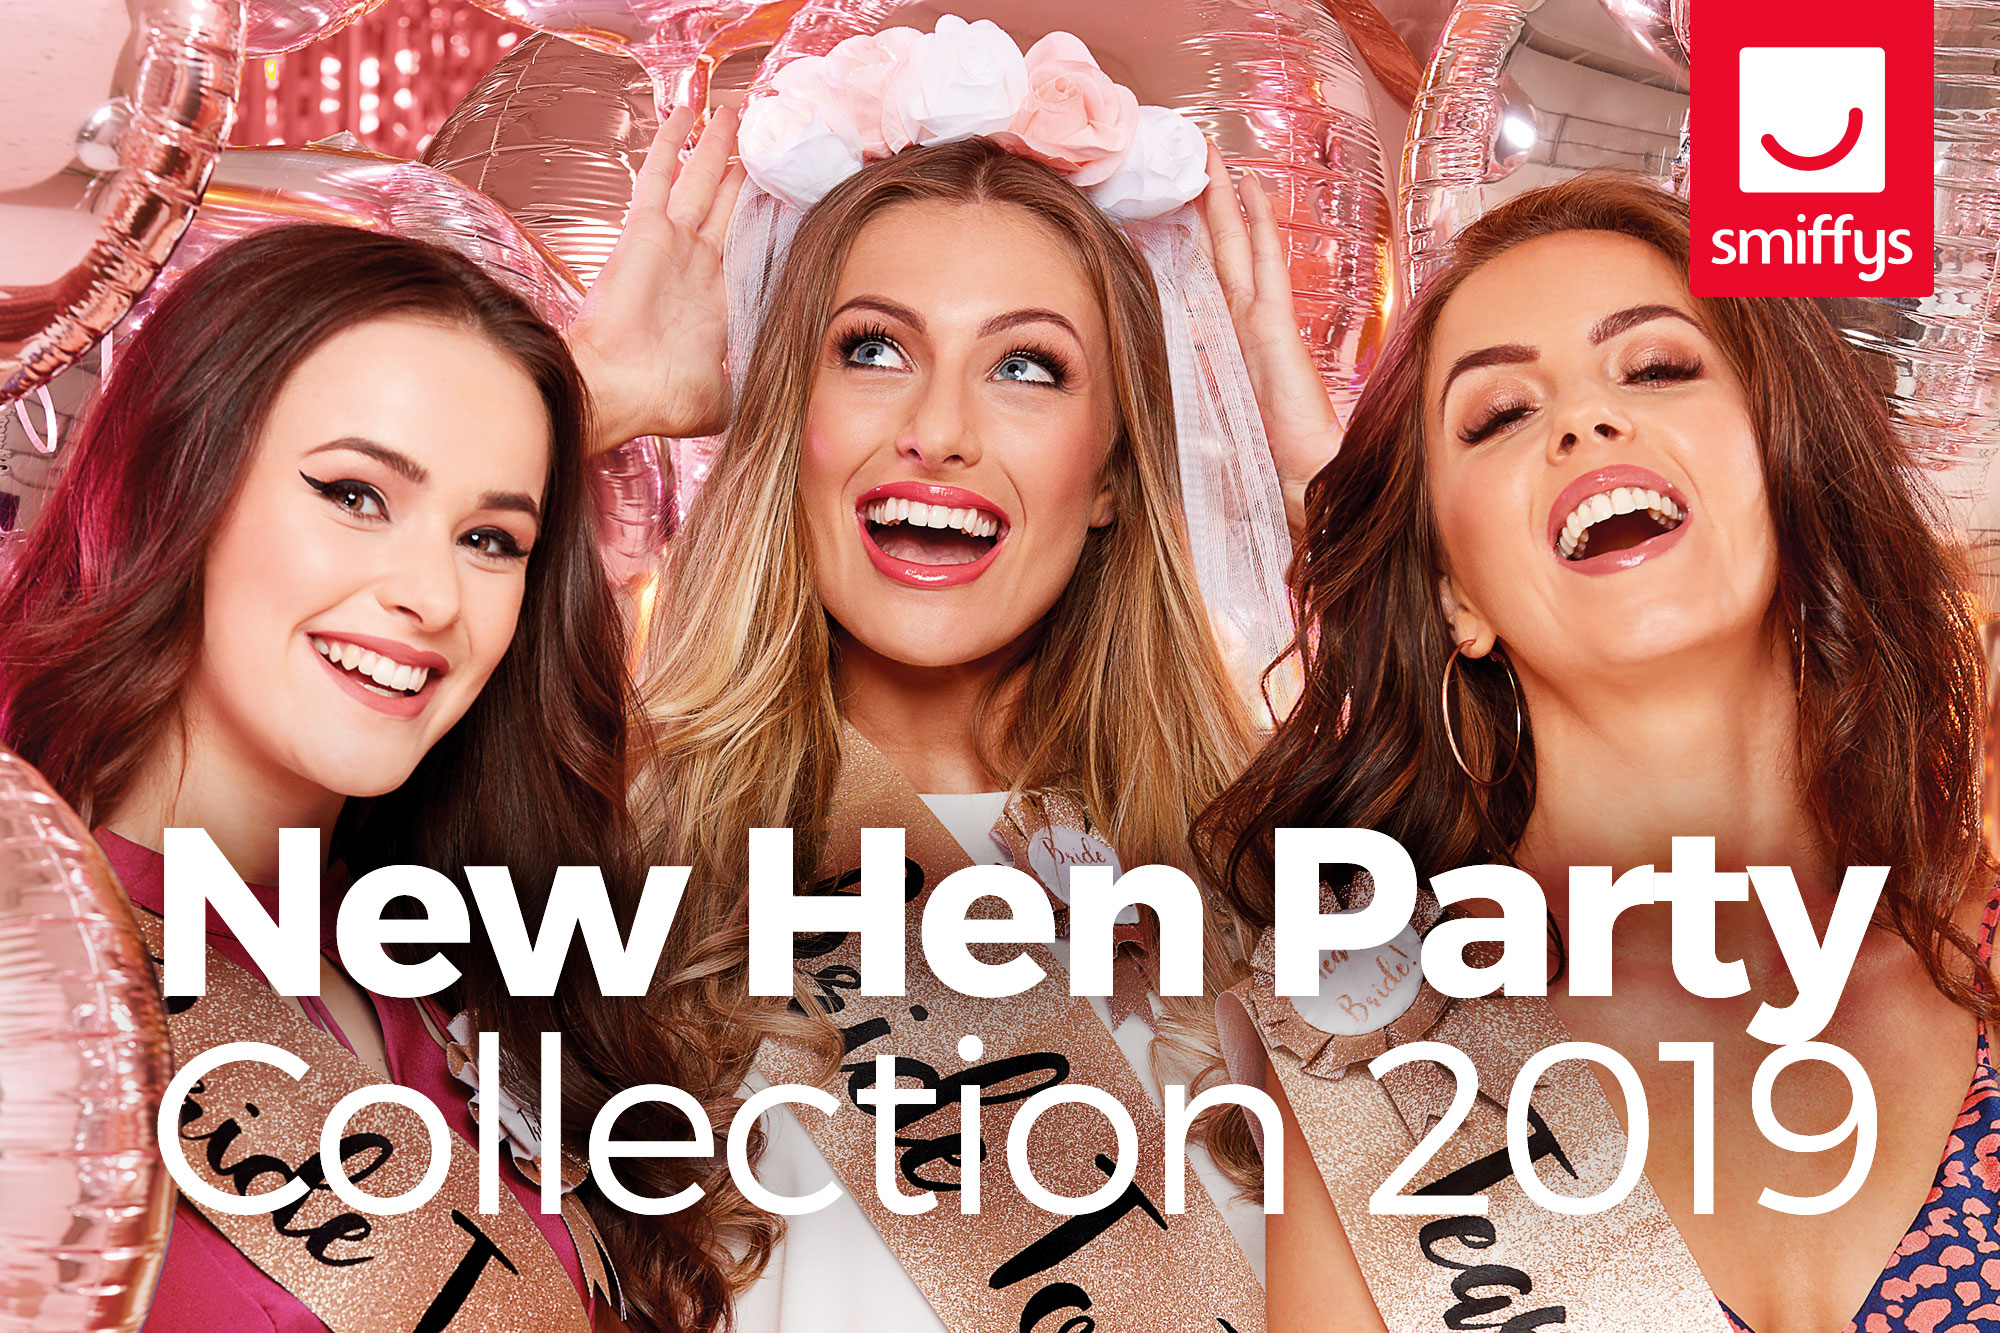 New Hen Party Collection 2019